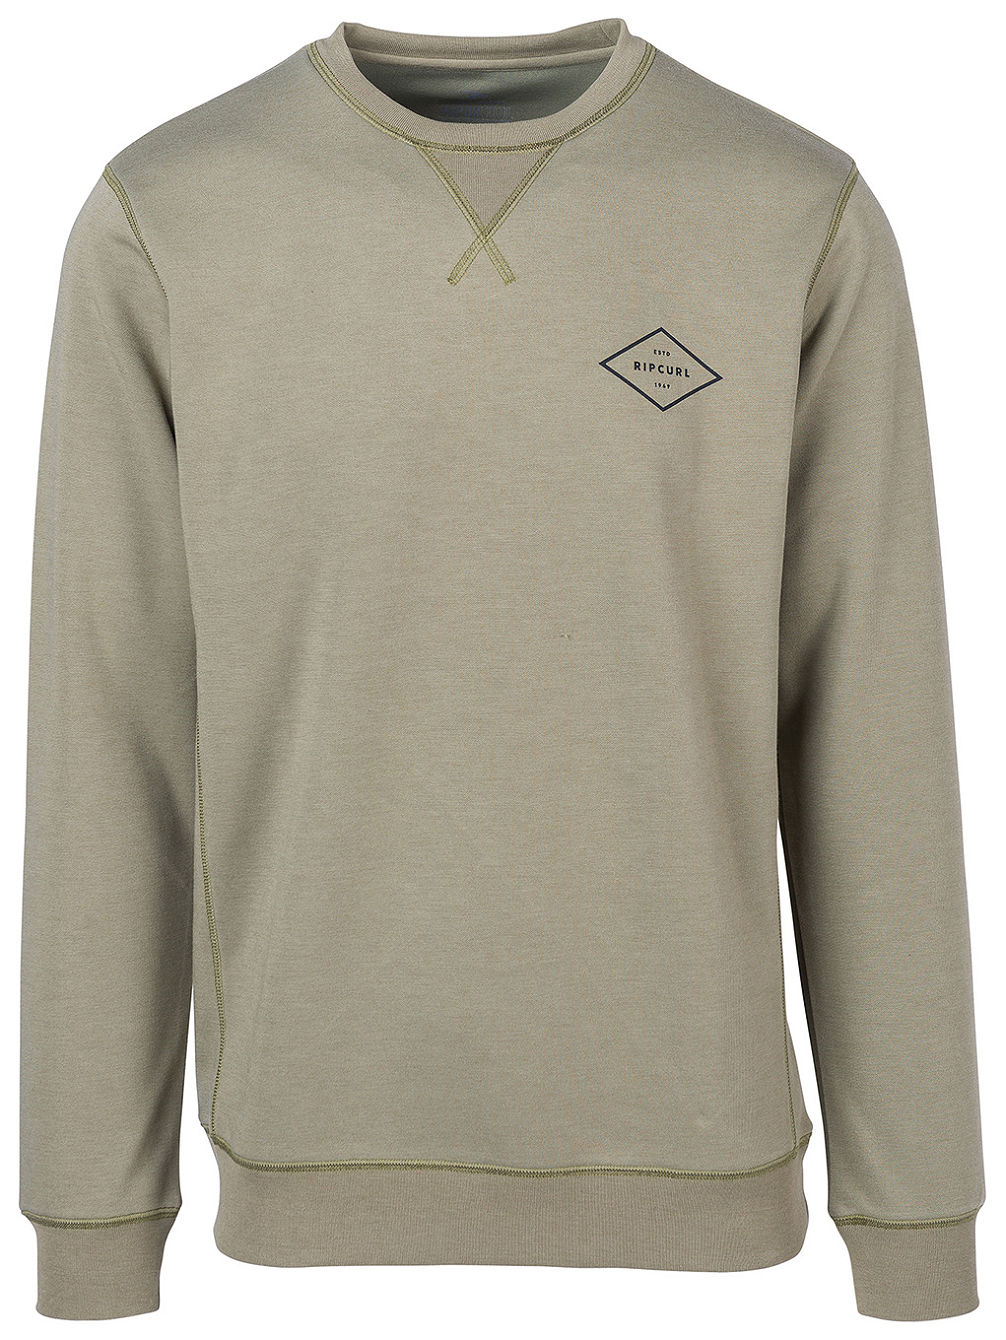 Essential Surfers Crew Sweater